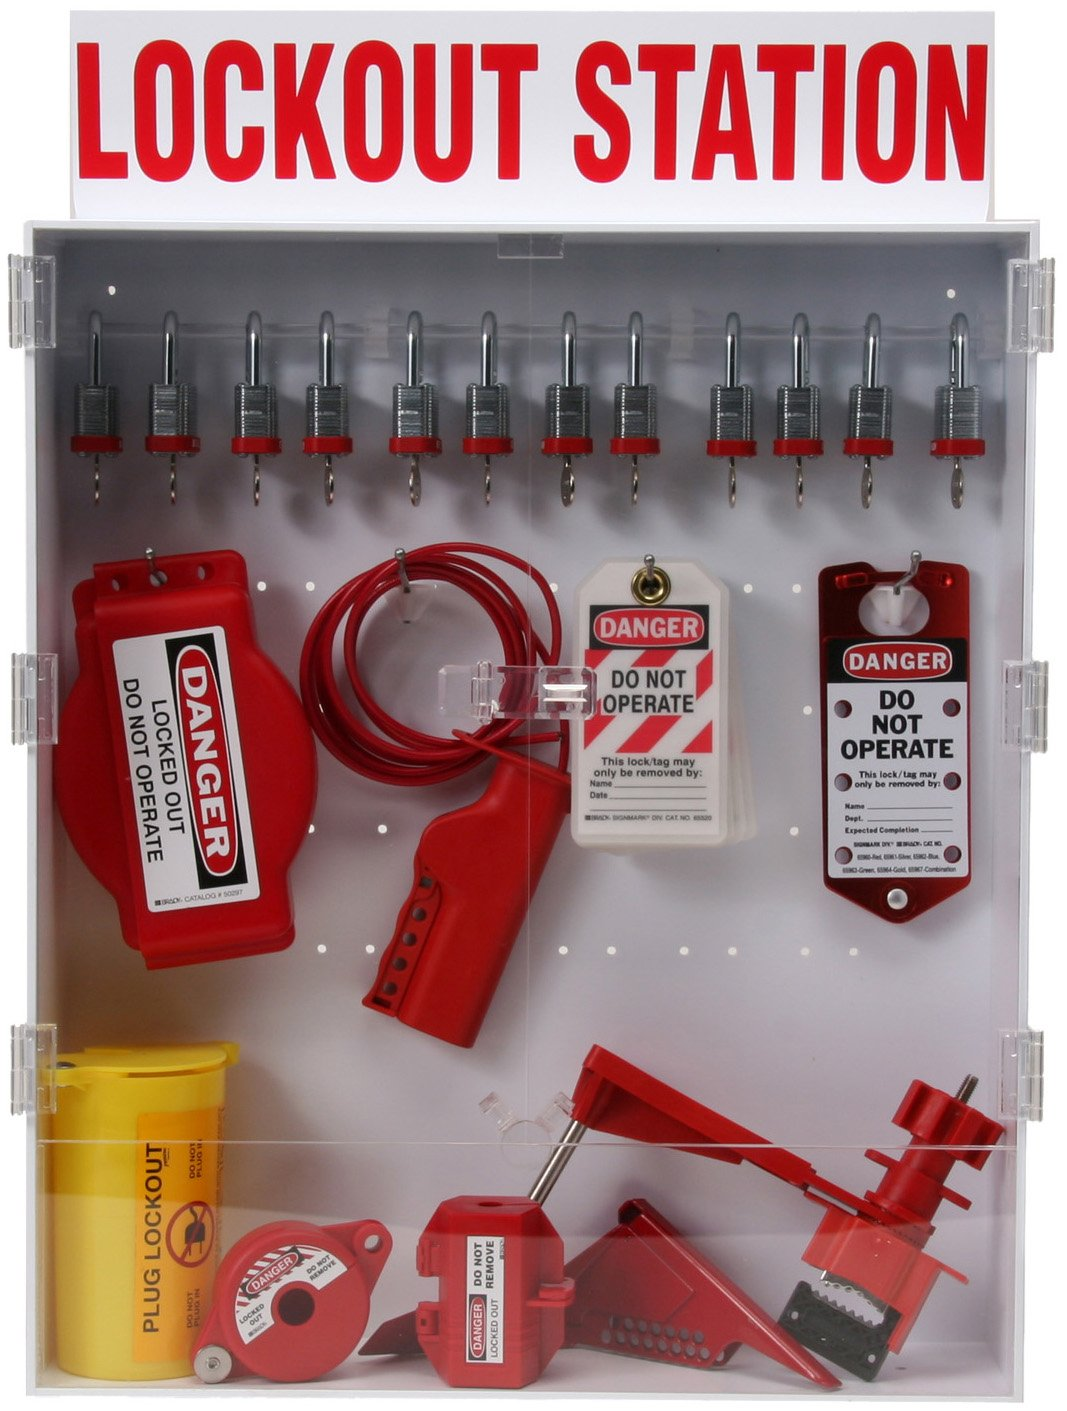 Tags Brady Lockout Station with Padlocks Includes 12 Safety Padlocks 99703 and Devices Enclosed Station